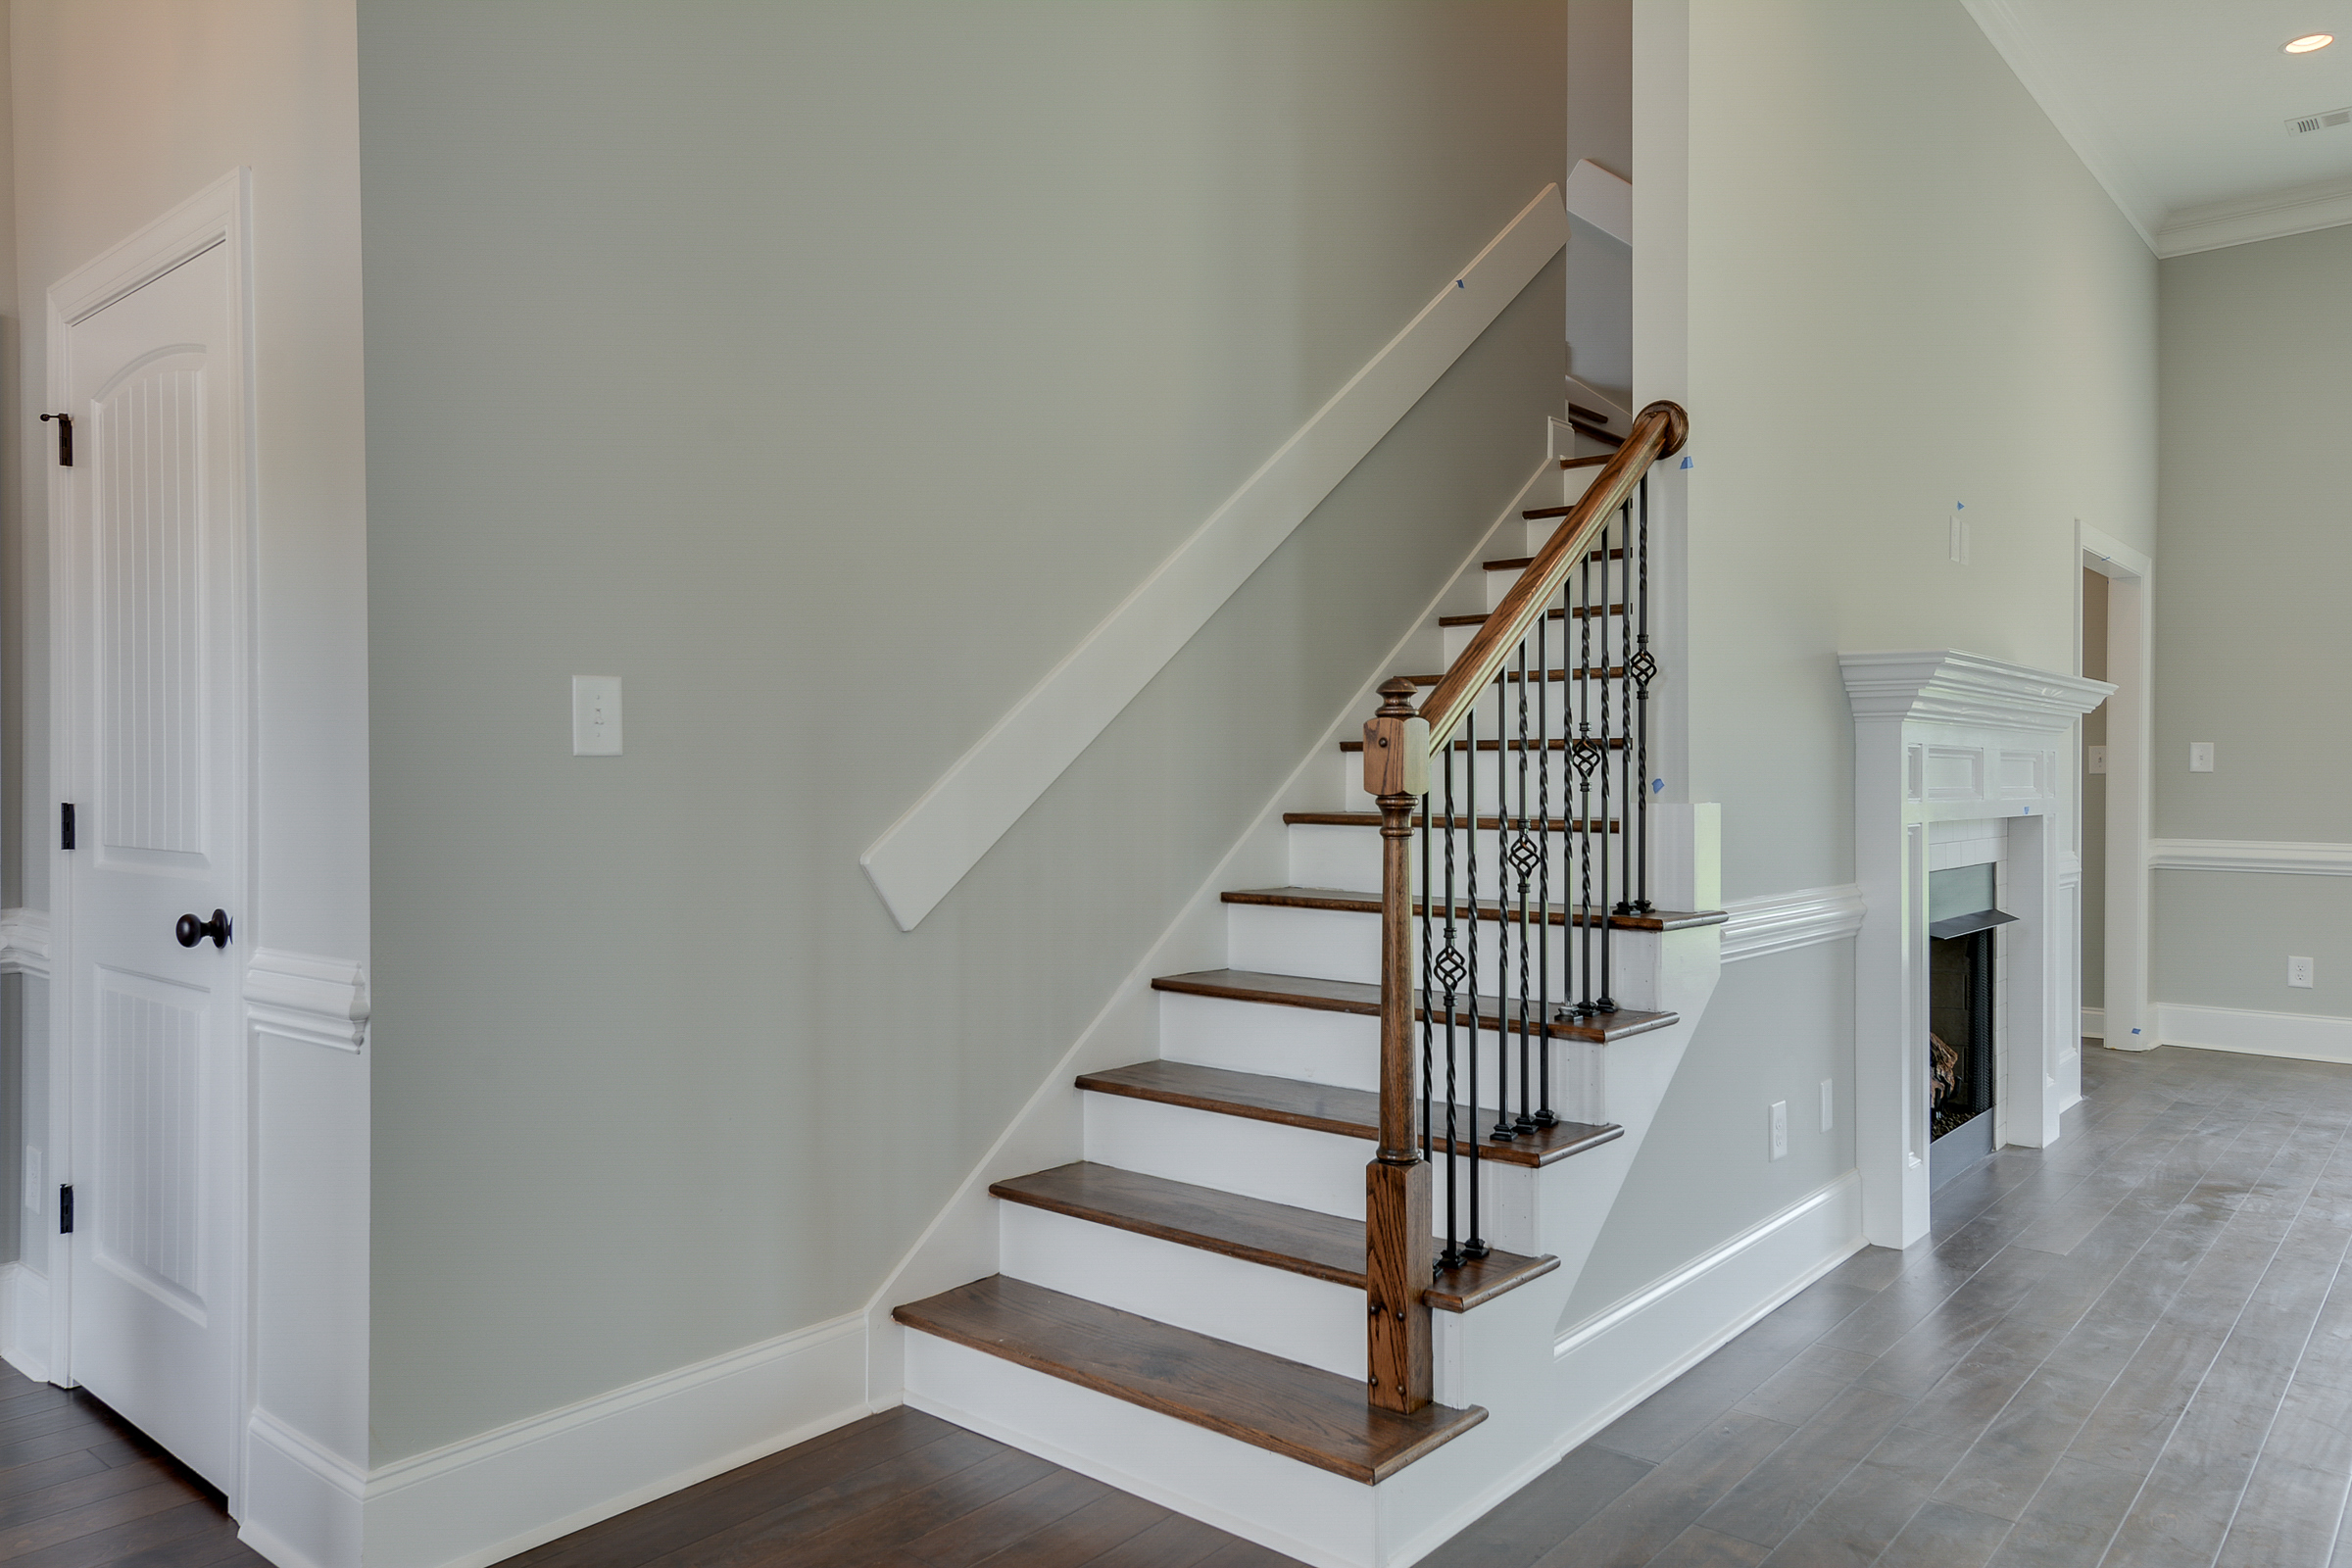 An image of the staircase of a Kelarie home.